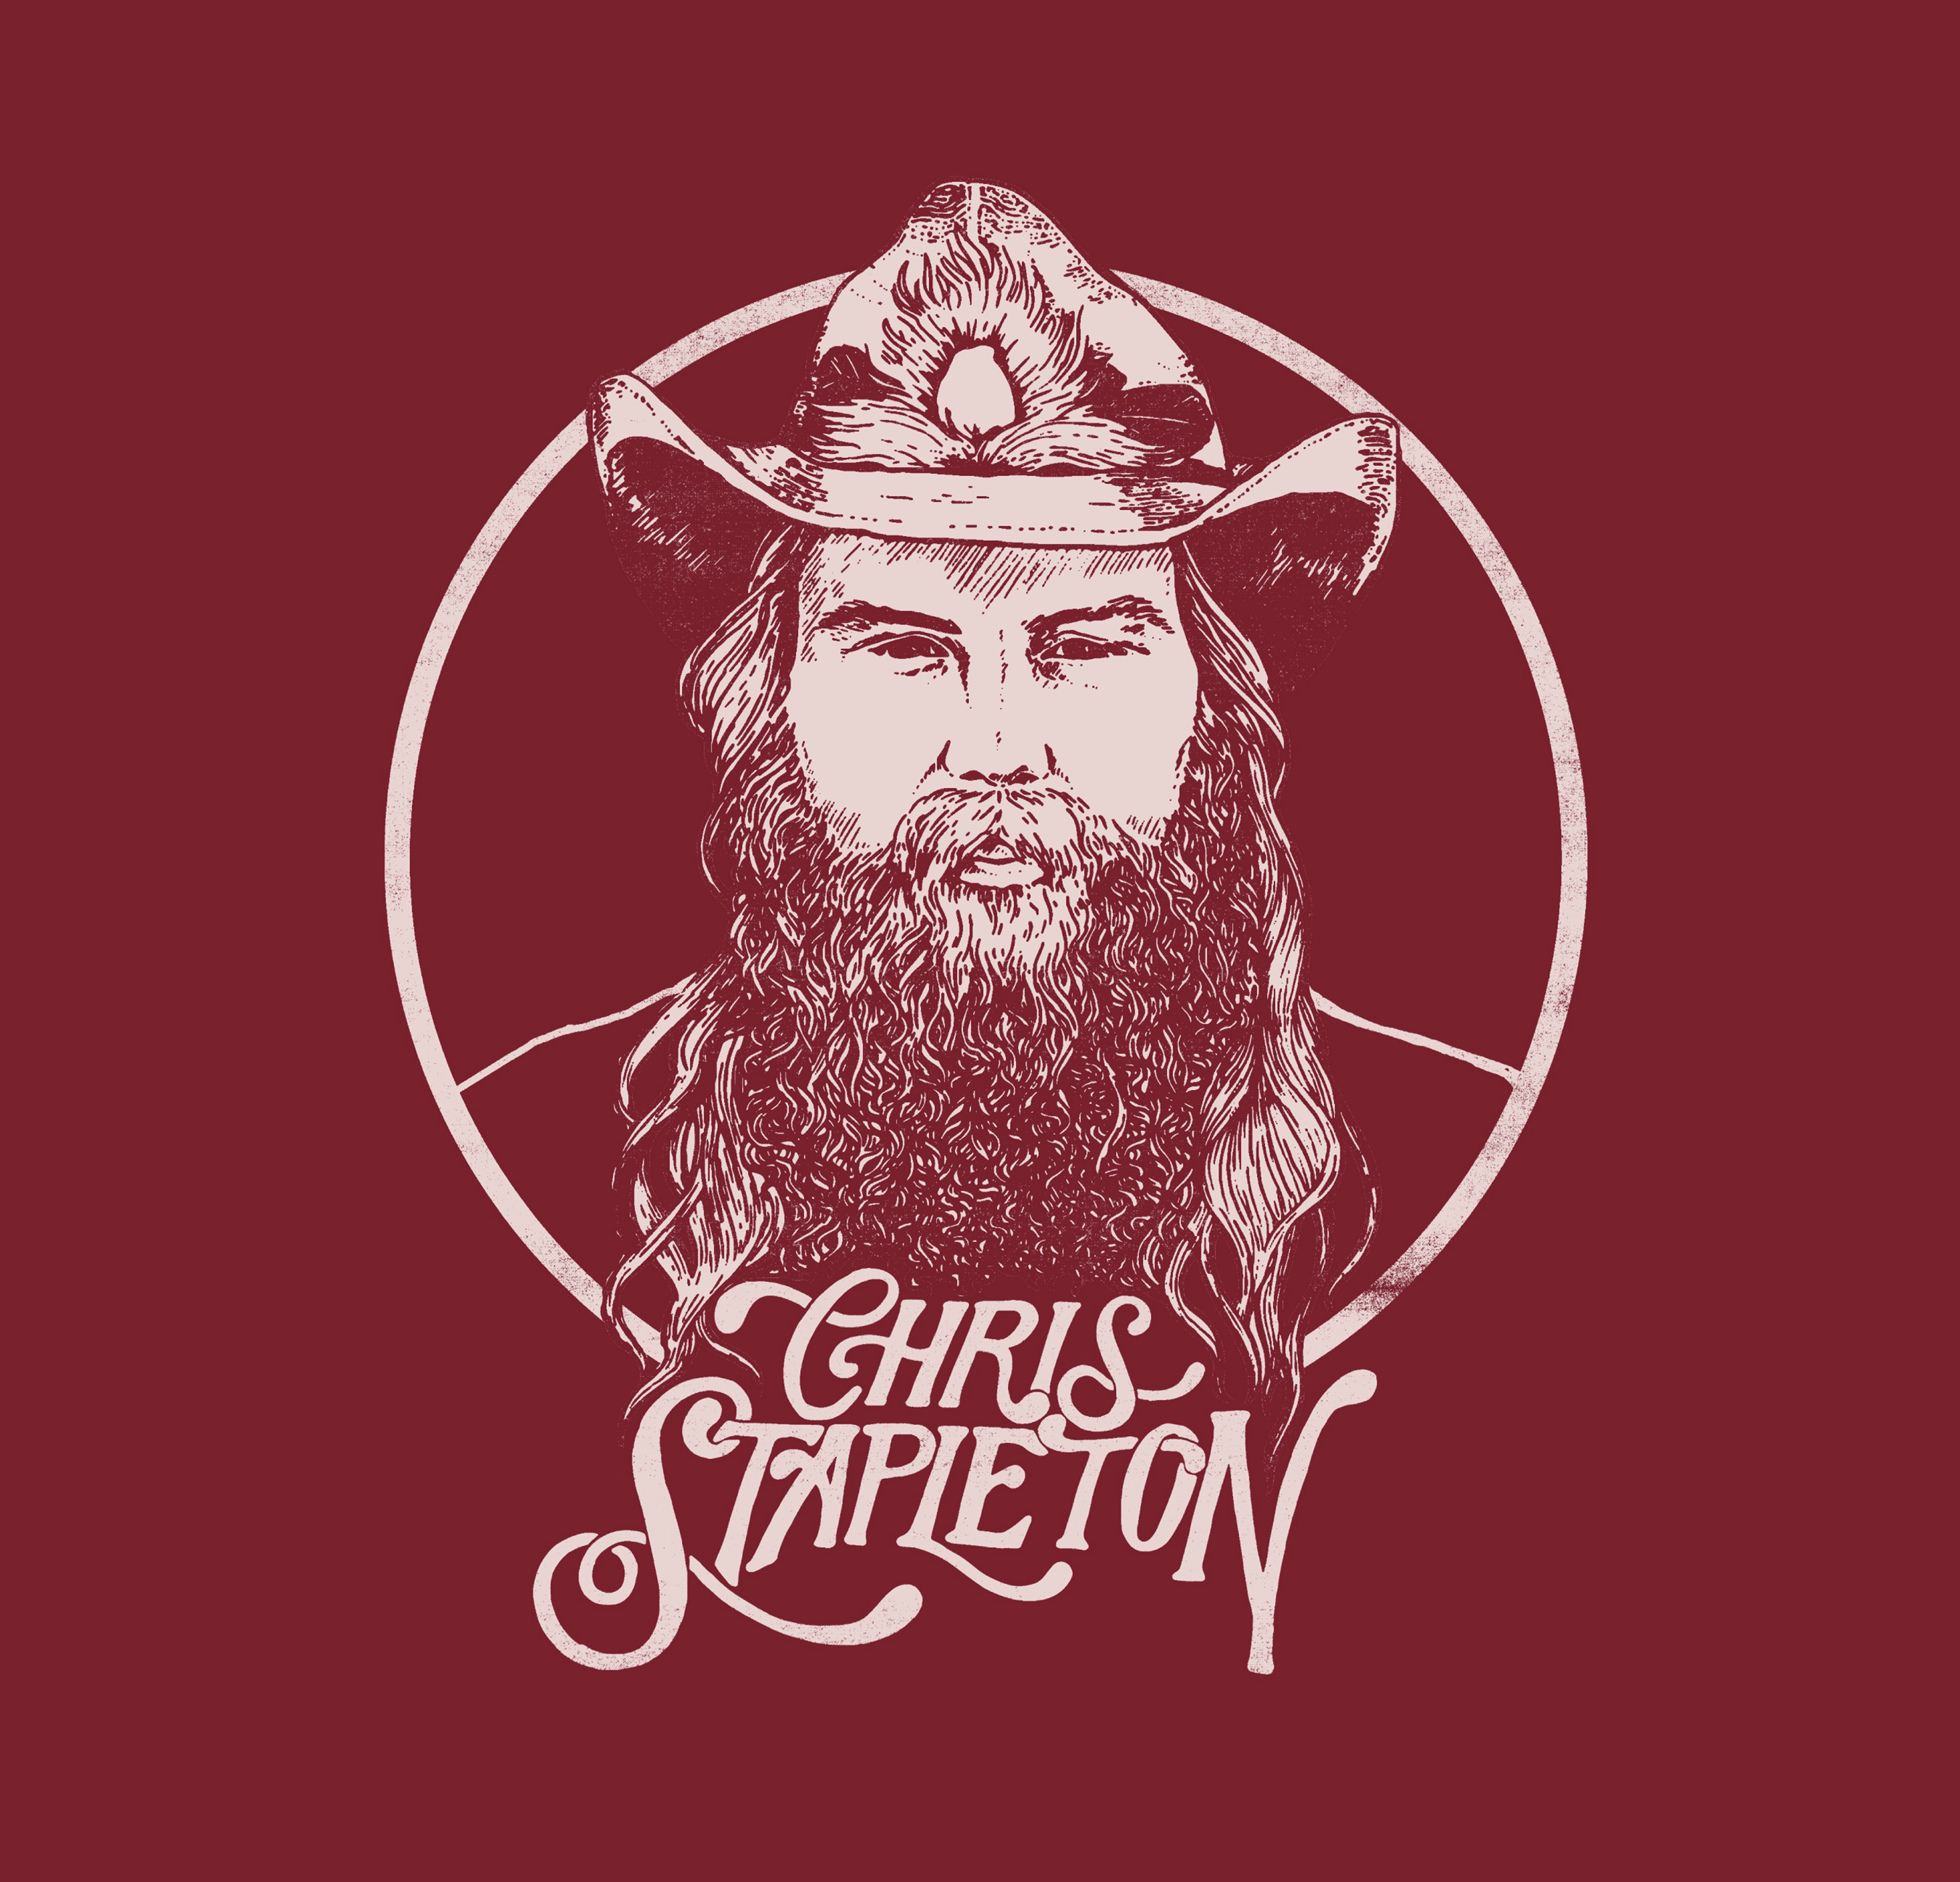 What does Chris Stapleton have in common with Etta James